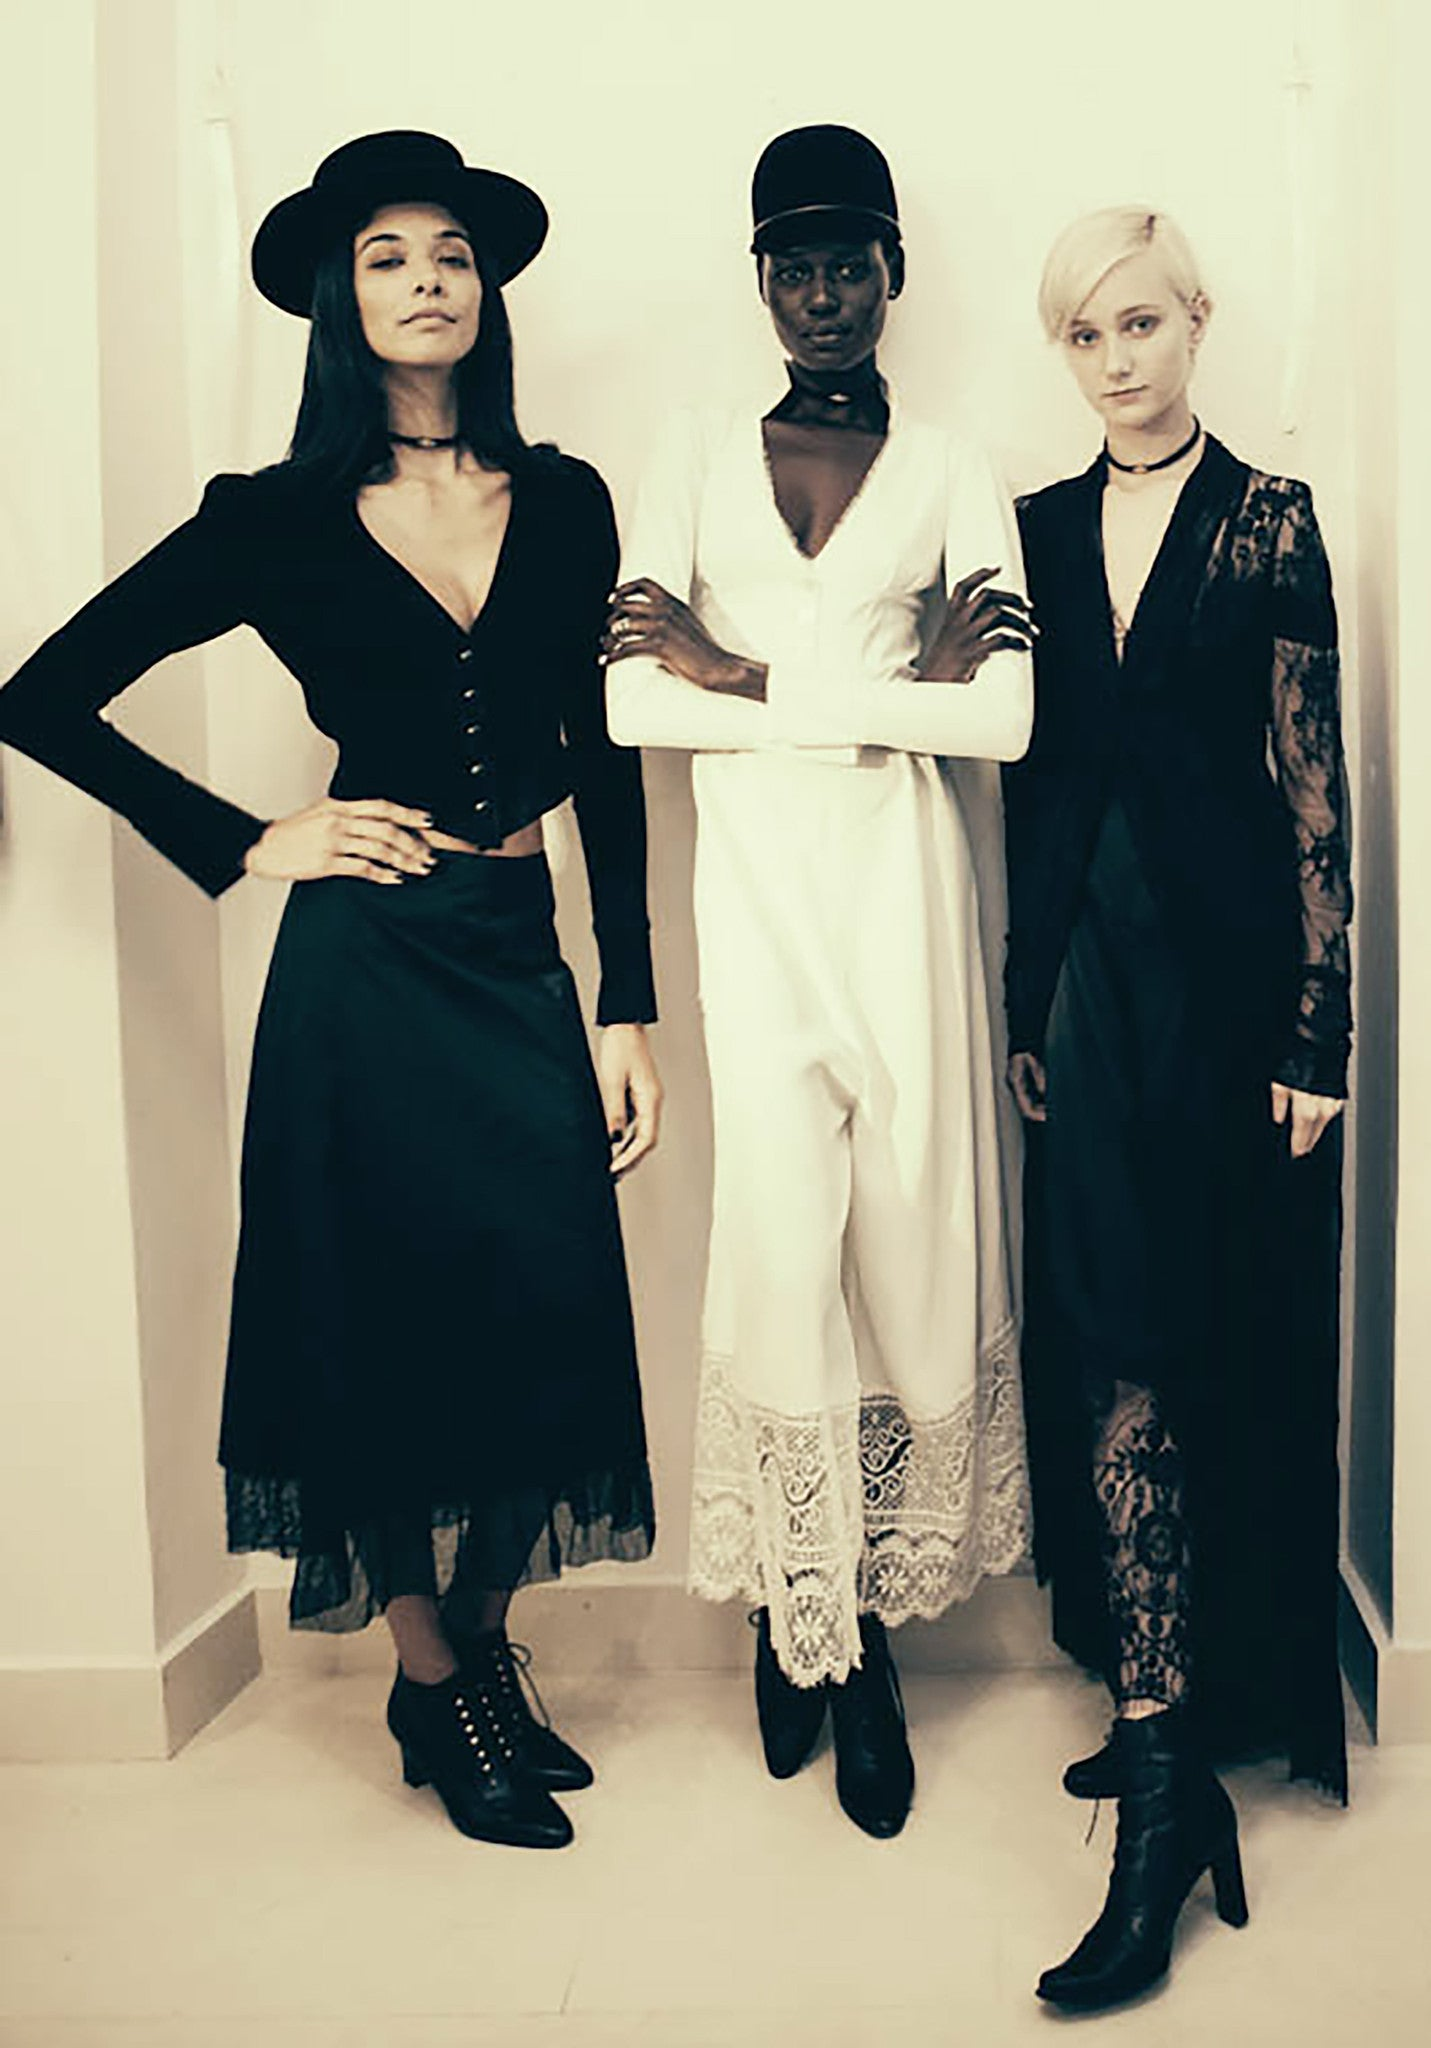 Heidy de la Rosa Model Ajak Deng Juliette Fazekas IMG Models Fitted Black Suede Victorian Jacket & Tulle Trim Silk Skirt Wendy Nichol Clothing Designer Fashion Runway show SS15 Space Master handmade in NYC New York City Bespoke Made To Measure Made to Order custom Tailoring